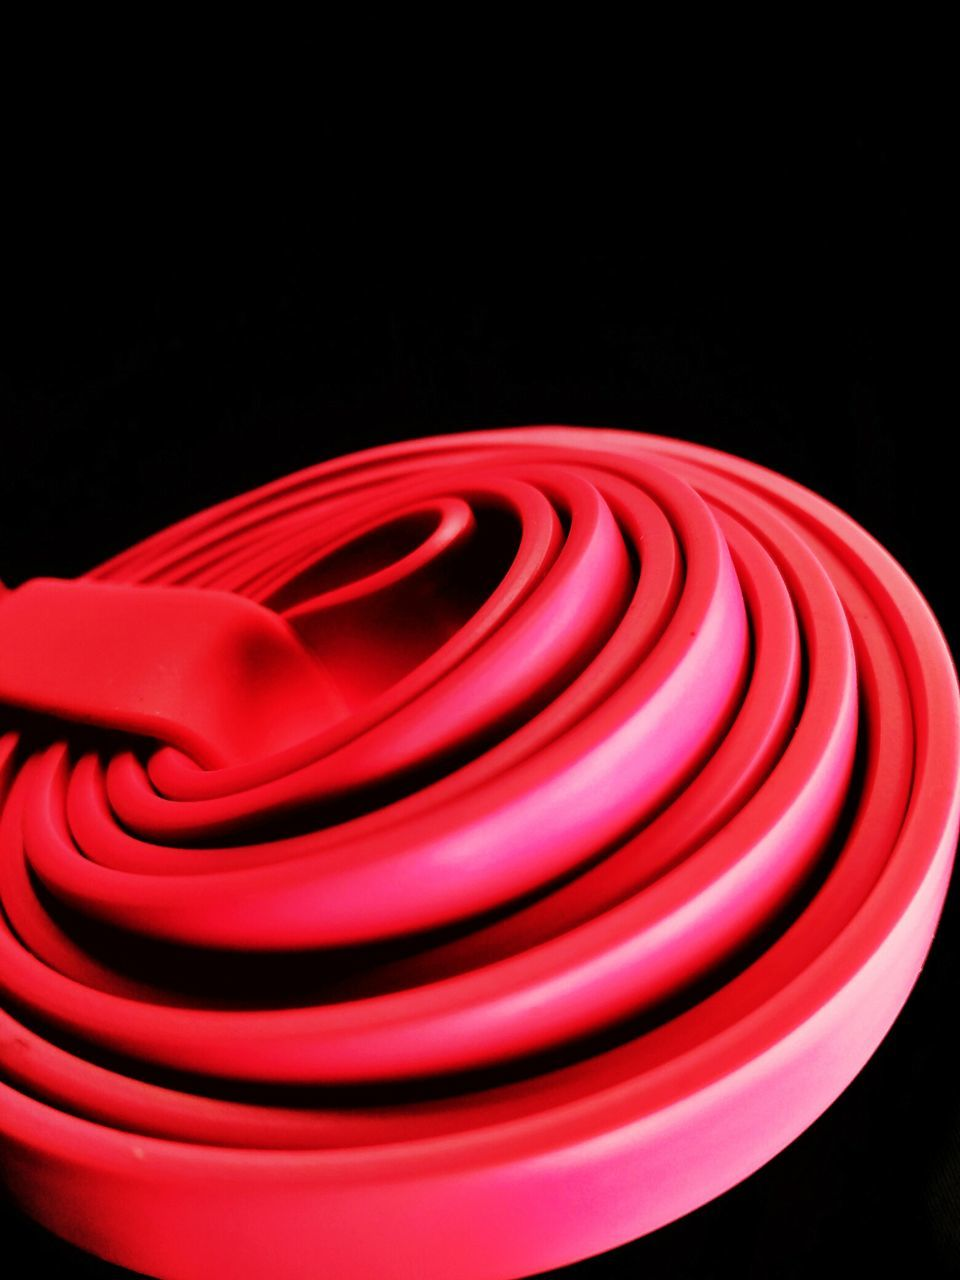 red, black background, studio shot, spiral, no people, close-up, pattern, indoors, night